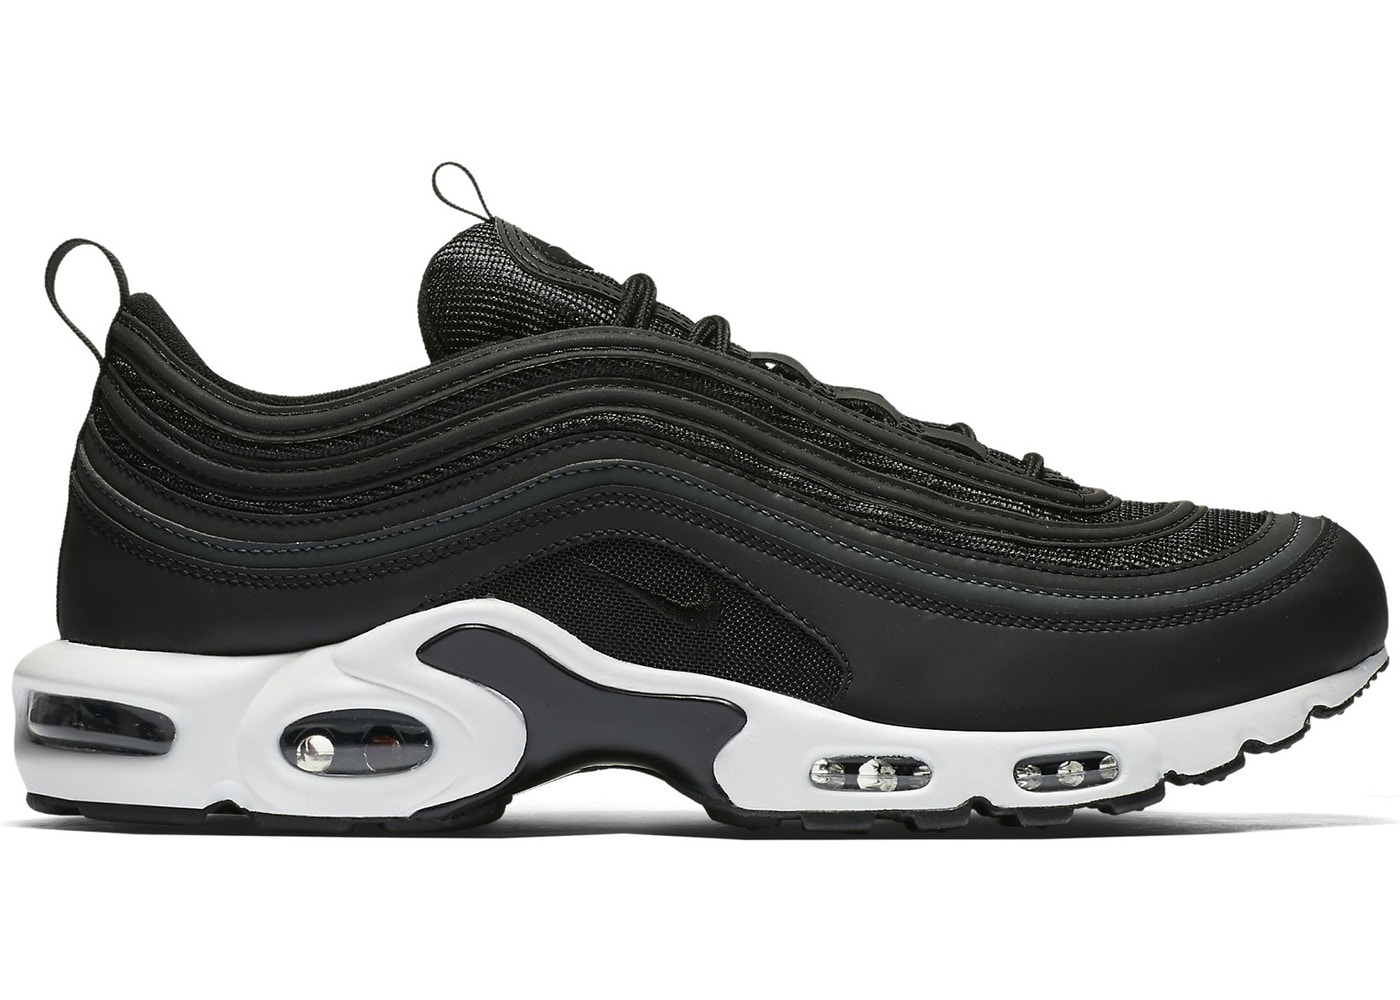 check out fcd7b 5dcd3 Air Max Plus 97 Black White